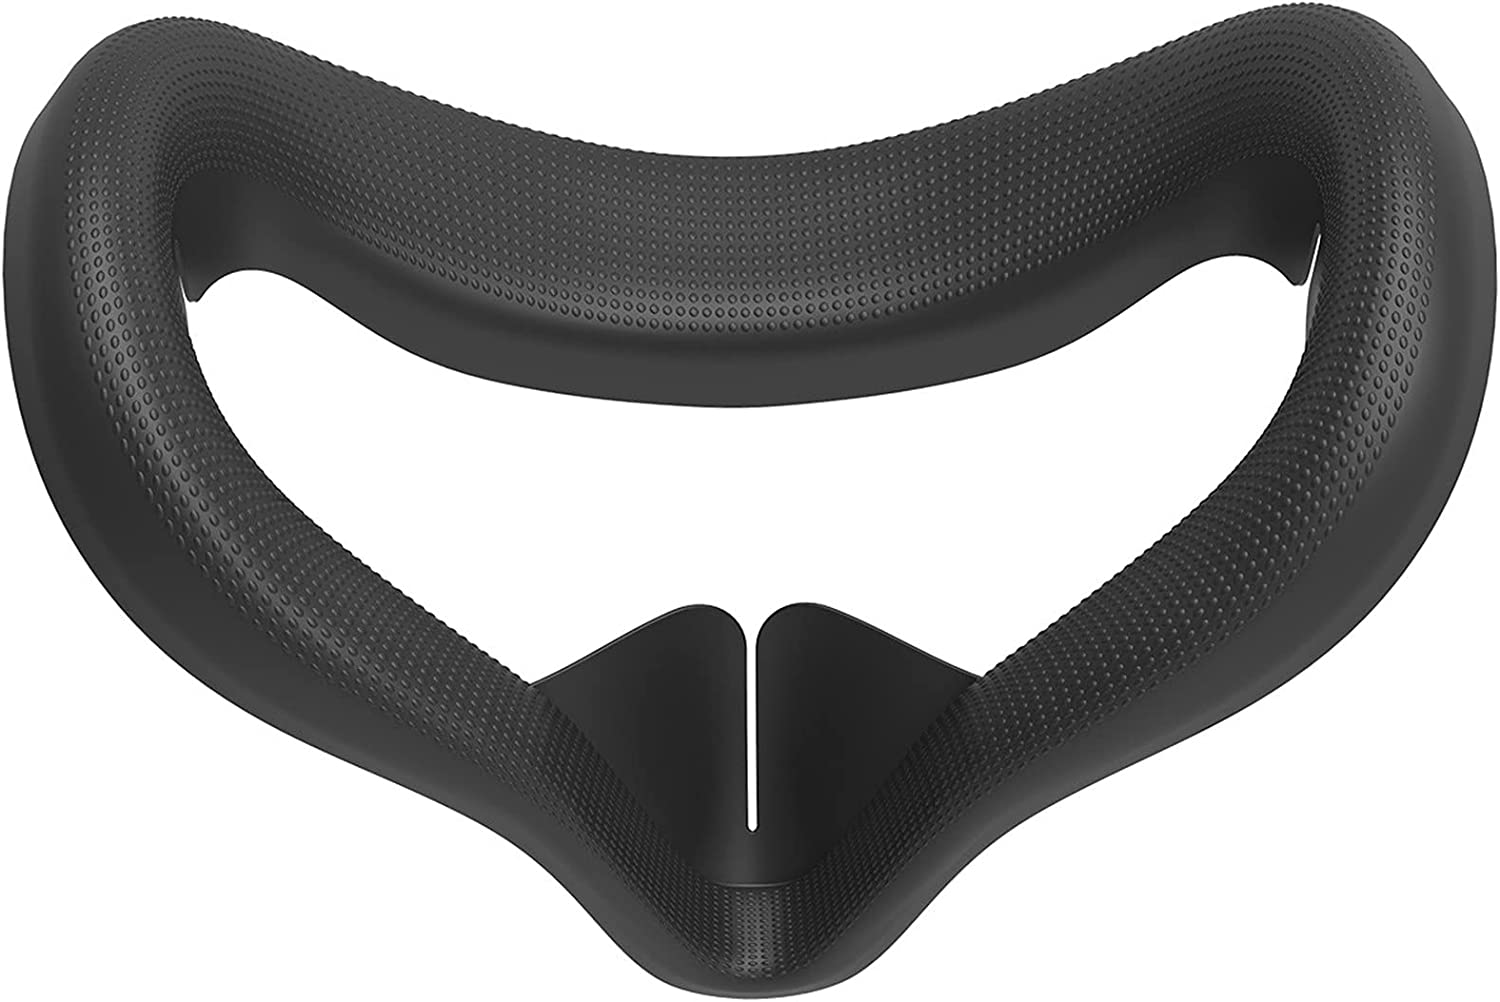 for Oculus Quest 2 VR Glasses Face Cover Eye Mask Cushion Facial Pad Soft Silicone Anti-Sweat Shading Protective Massage Bumps 2nd Generation Replaceable Accessories (Black)